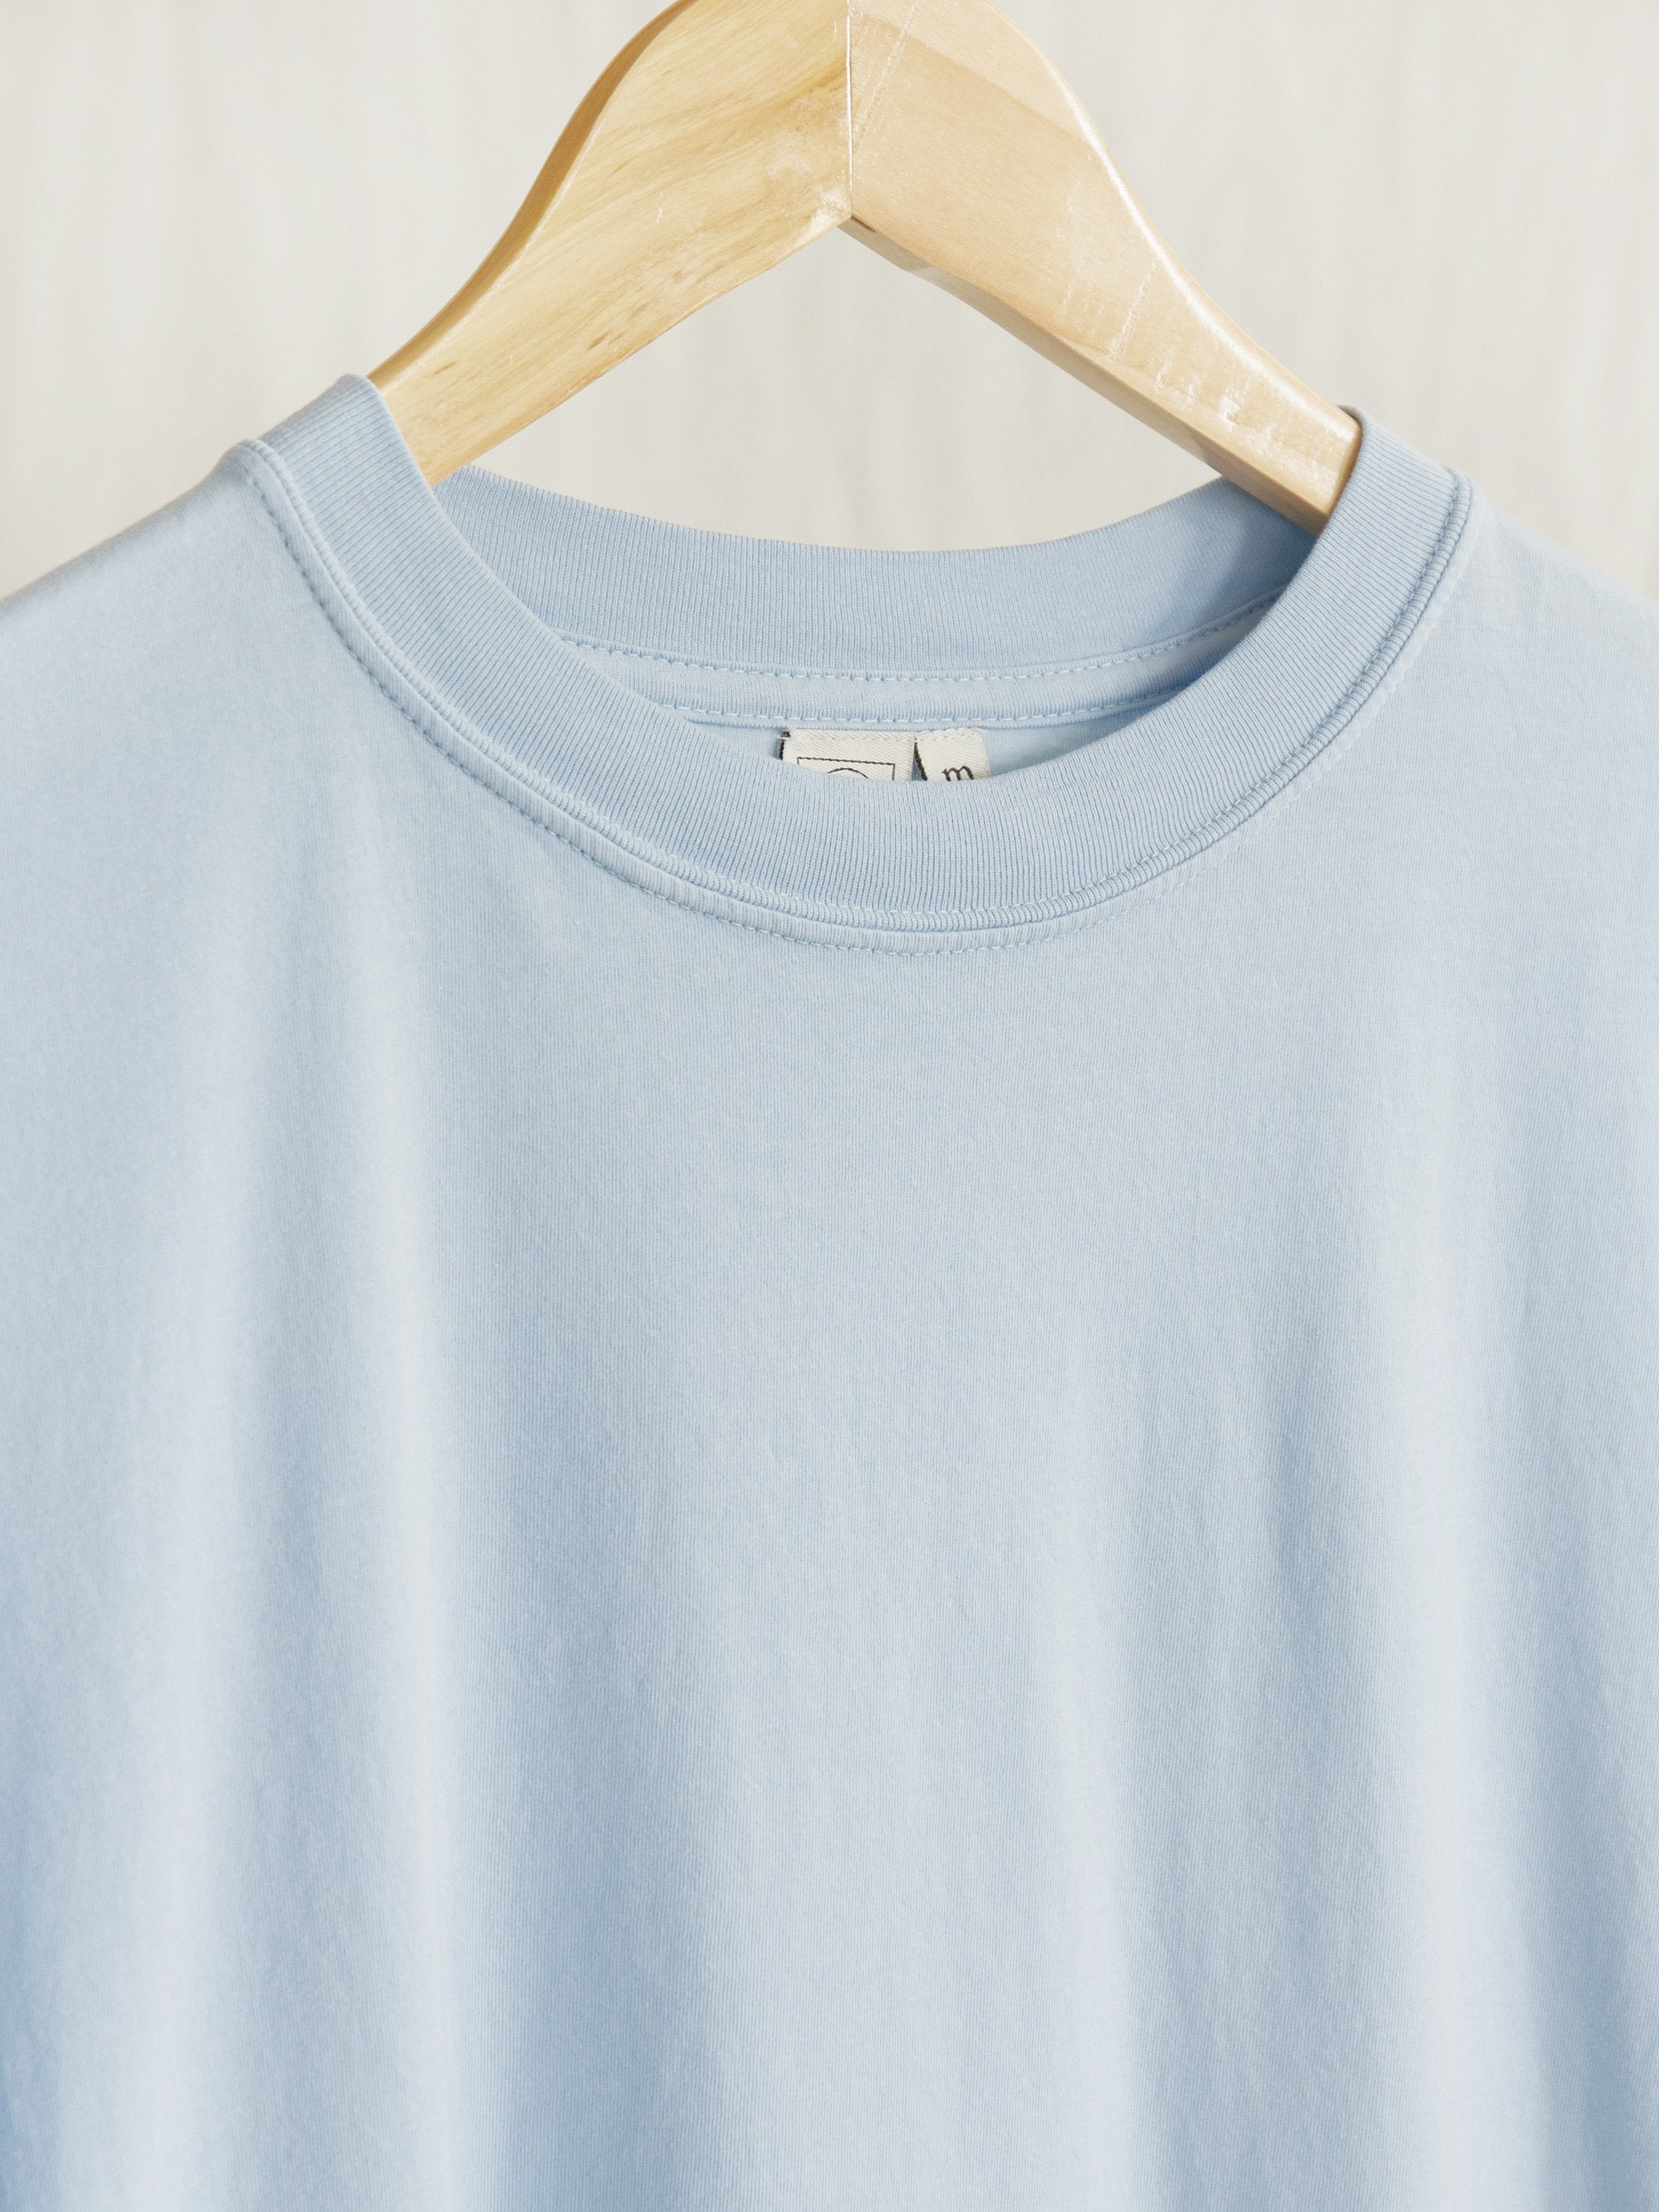 Namu Shop - paa SS Tee Two - Baby Blue